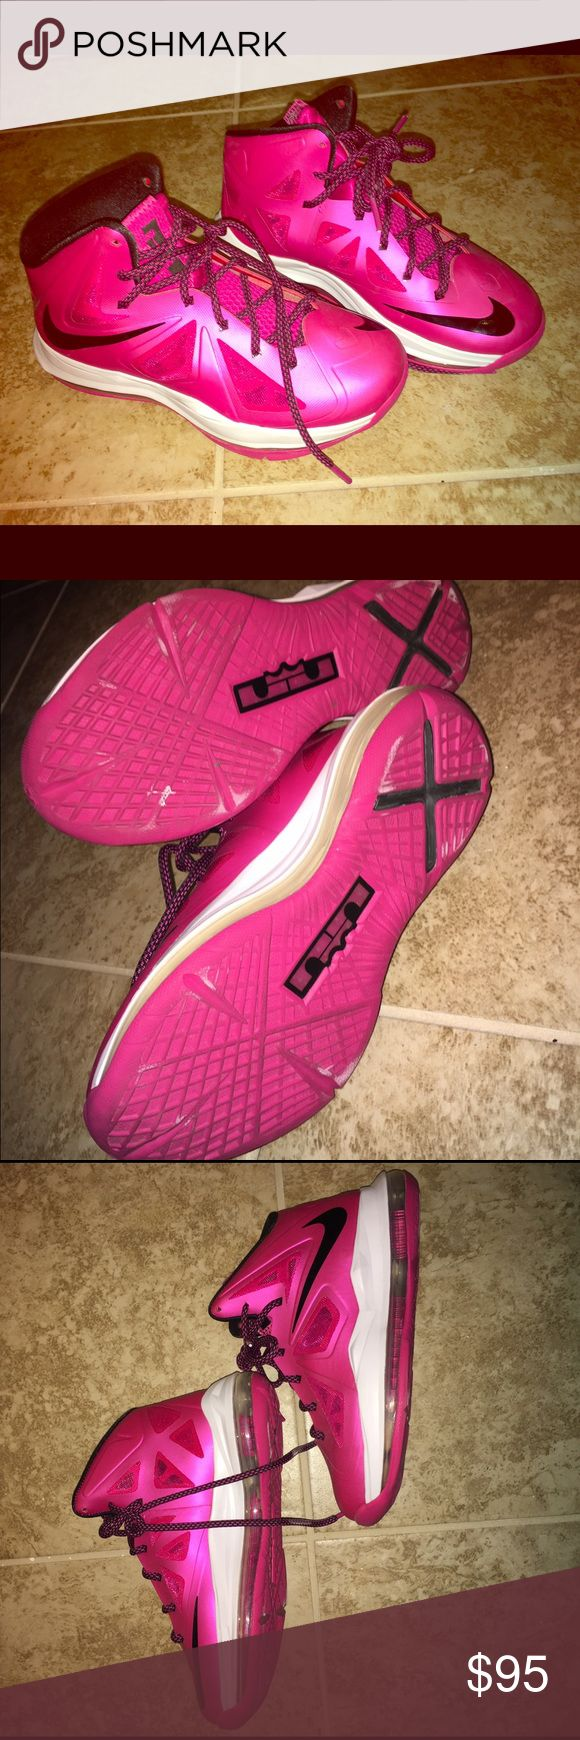 Pink Lebron 10 Breast Cancer Fireberry's 💗🖤 Pink Lebron 10 Breast Cancer Fireberry's 💗🖤 Great Condition, only worn once. If you have any questions please feel free to ask! Thank you! 😘 Nike Shoes Athletic Shoes